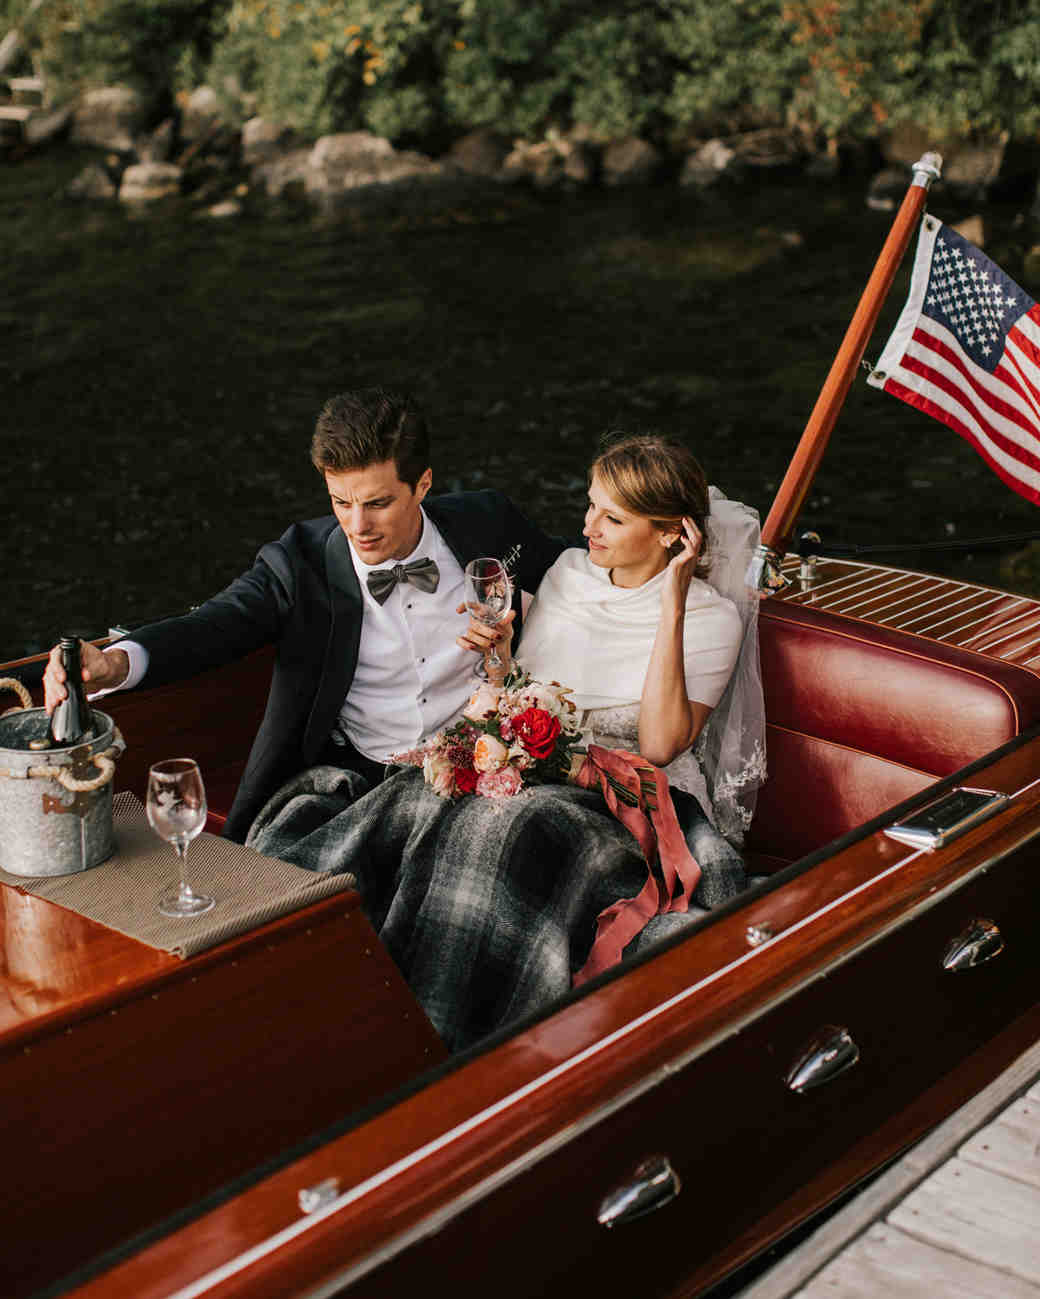 bride and groom sitting in vintage wooden Chris Craft boat